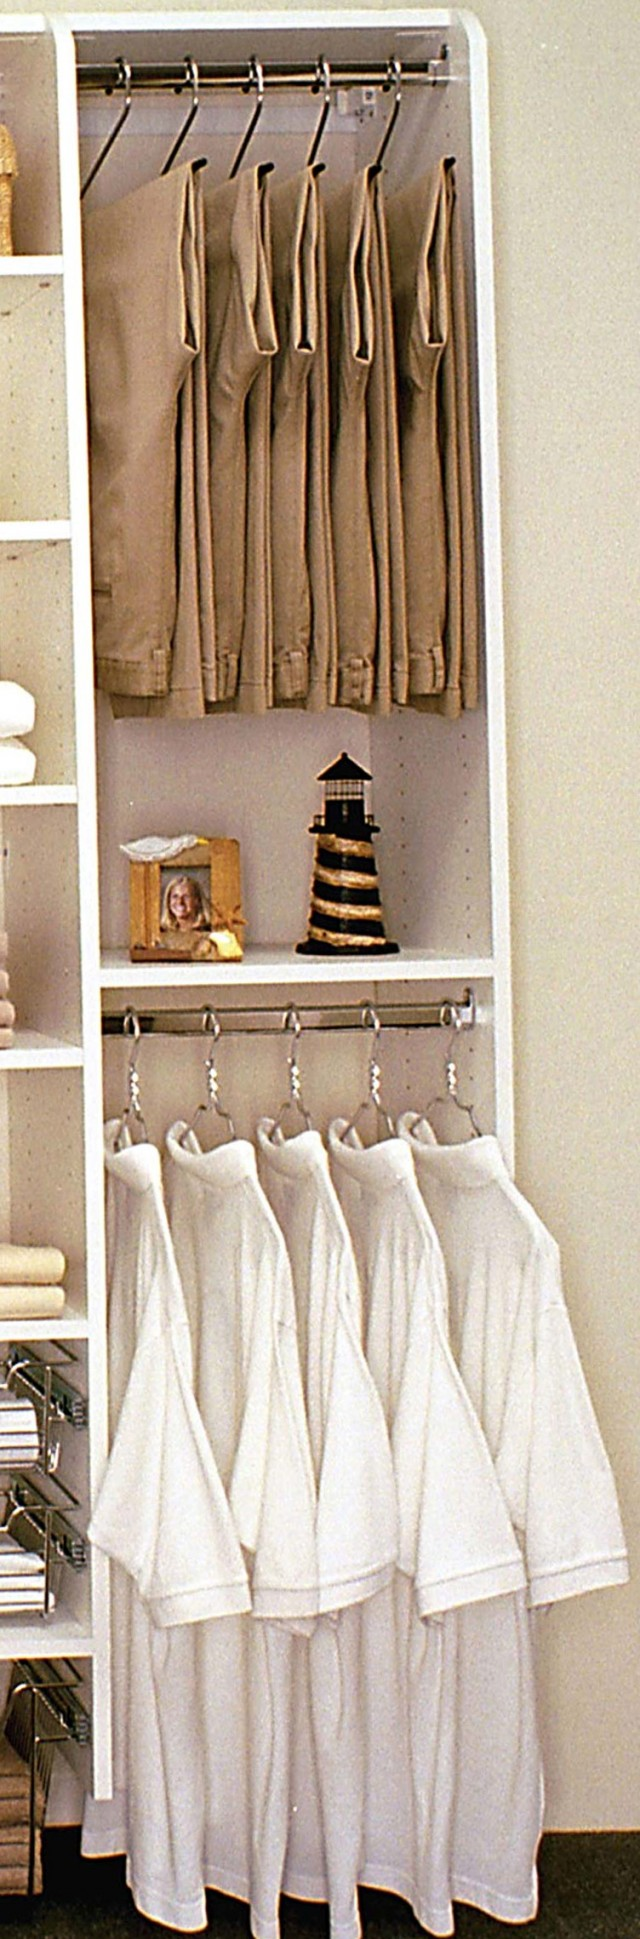 Ideas For Small Closets In Apartments